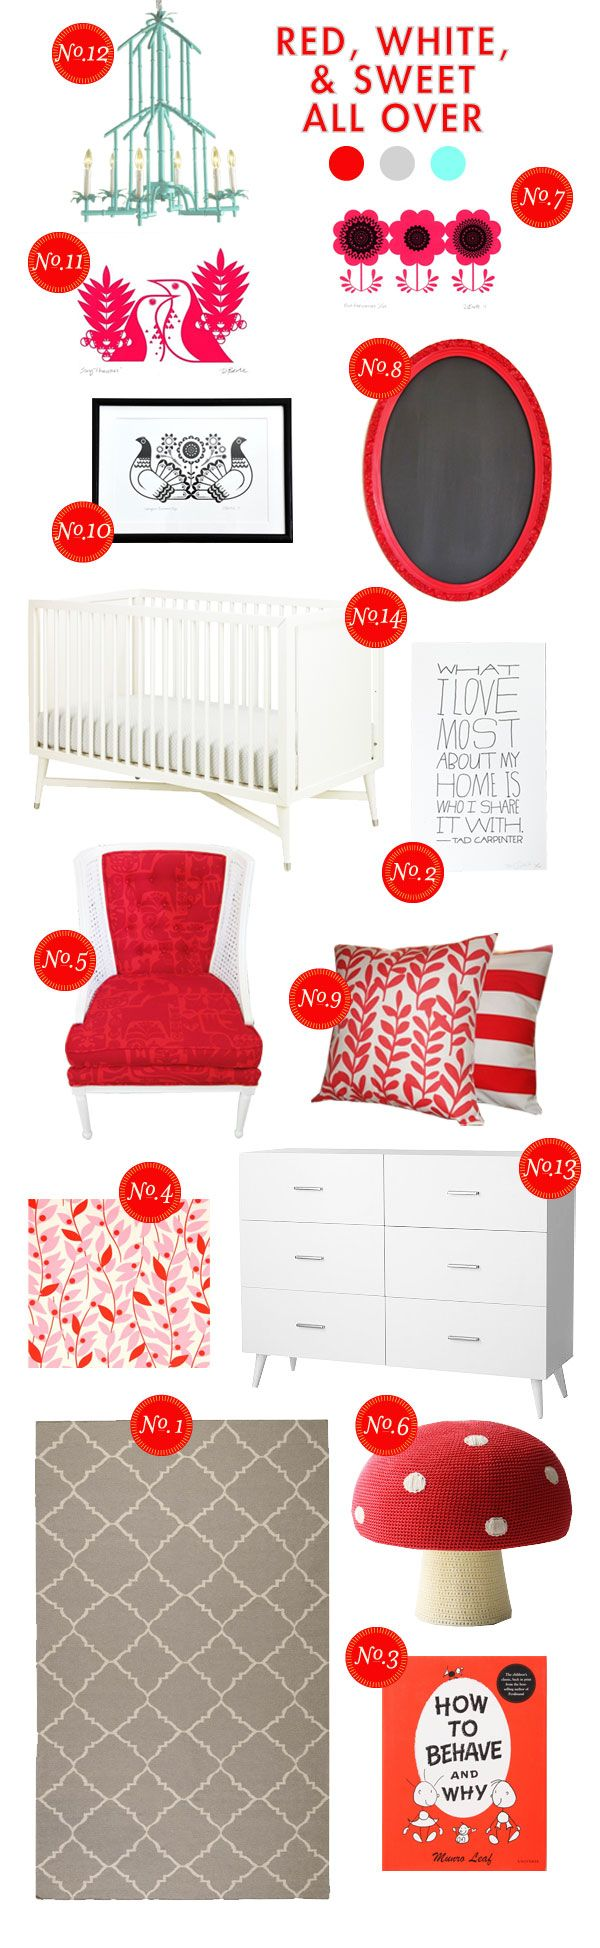 red-white-&-sweet all over nursery inspiration board. #pinhonest: Sweet, Lay Baby, Baby Lay, Girls Room, Inspiration Boards, Baby Room, Red White, White Bedroom, Kids Rooms